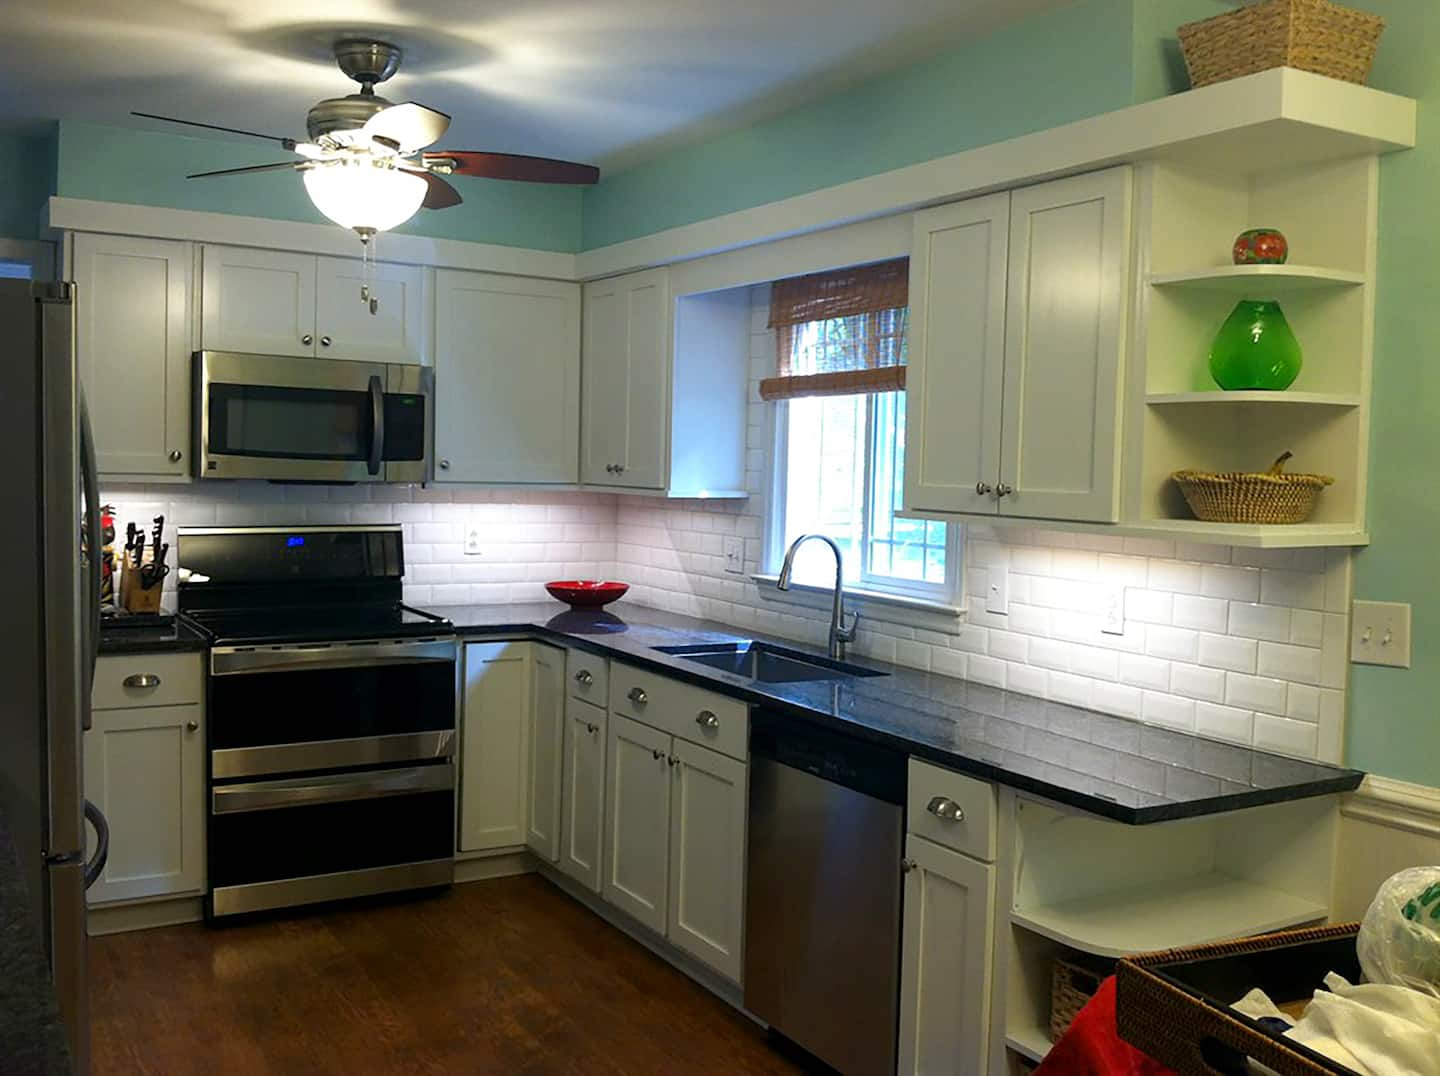 Refinish kitchen cabinets charlotte nc - Refinish Kitchen Cabinets Charlotte Nc 20